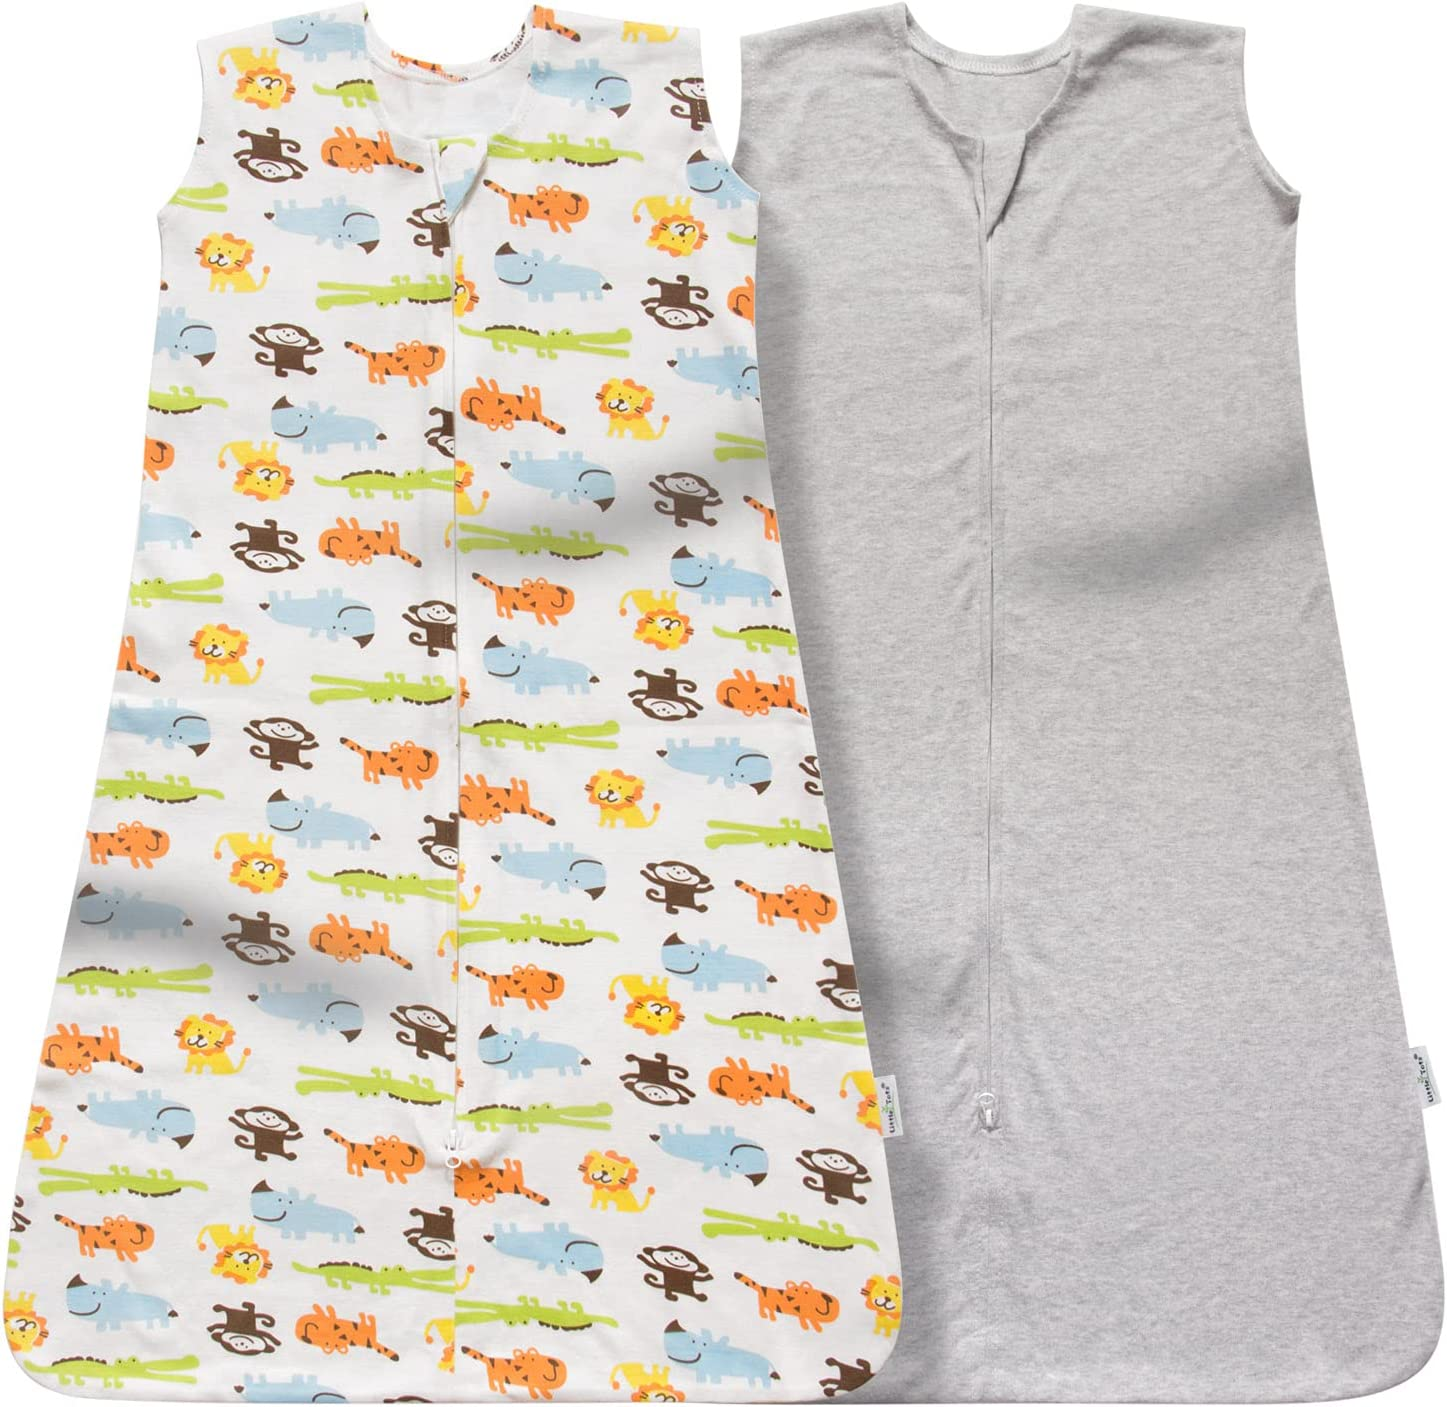 Translated Baby Wearable Blanket Sleepsack ! Super beauty product restock quality top! 100% Swaddle 2 Cotton Transition